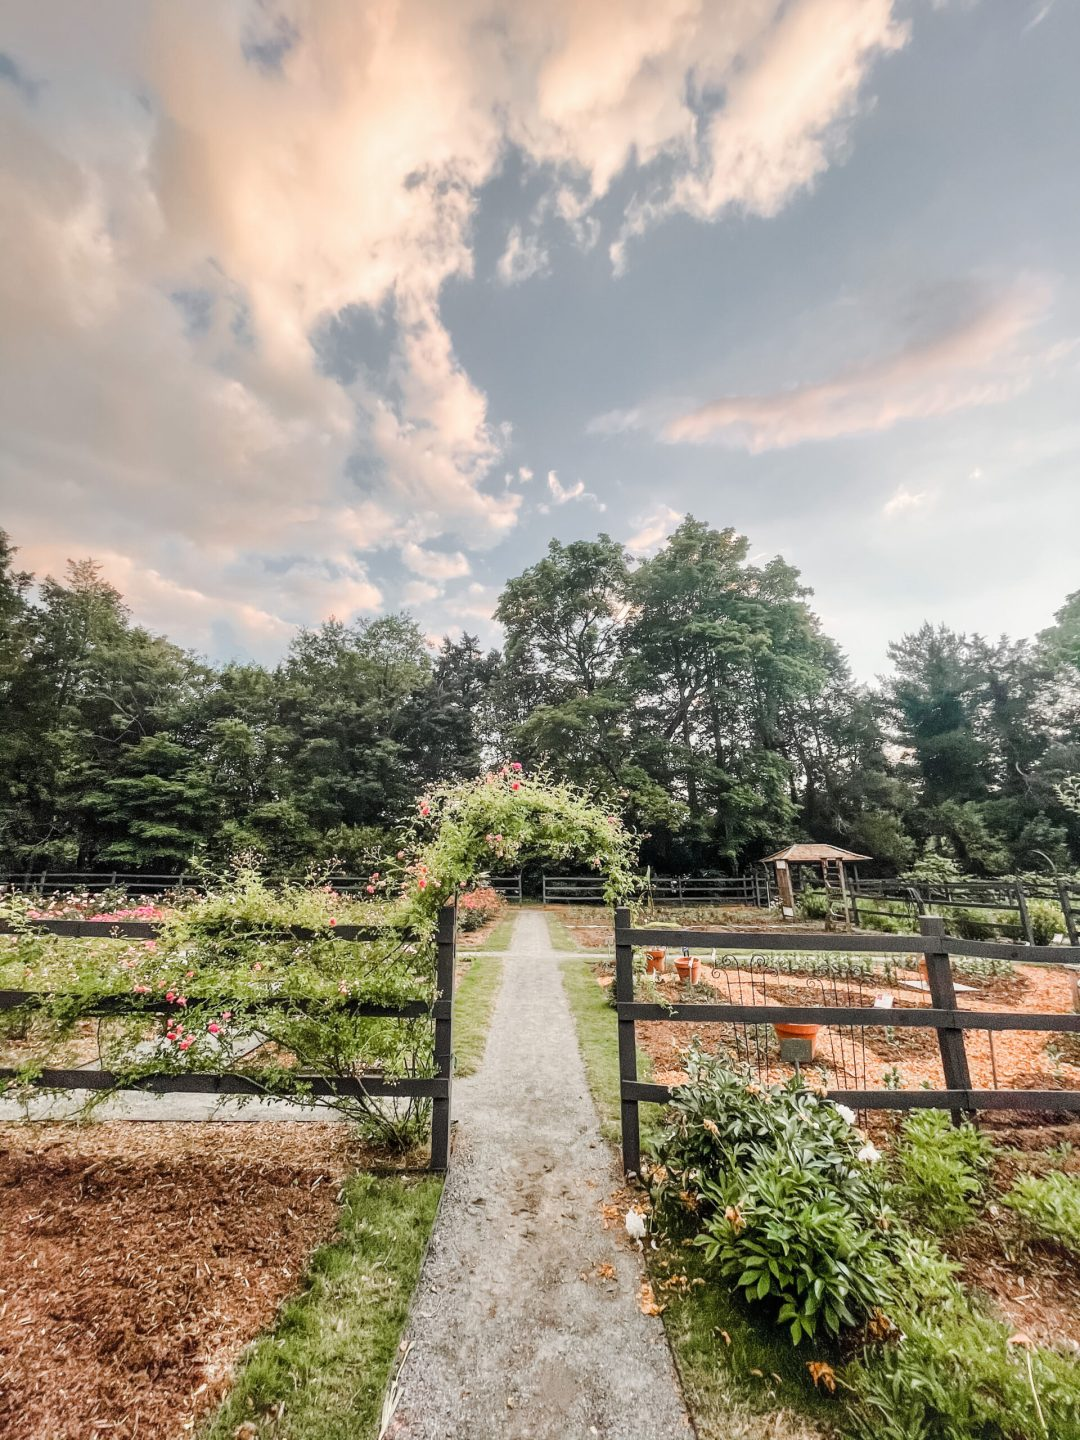 15 Things To Do In Winston-Salem